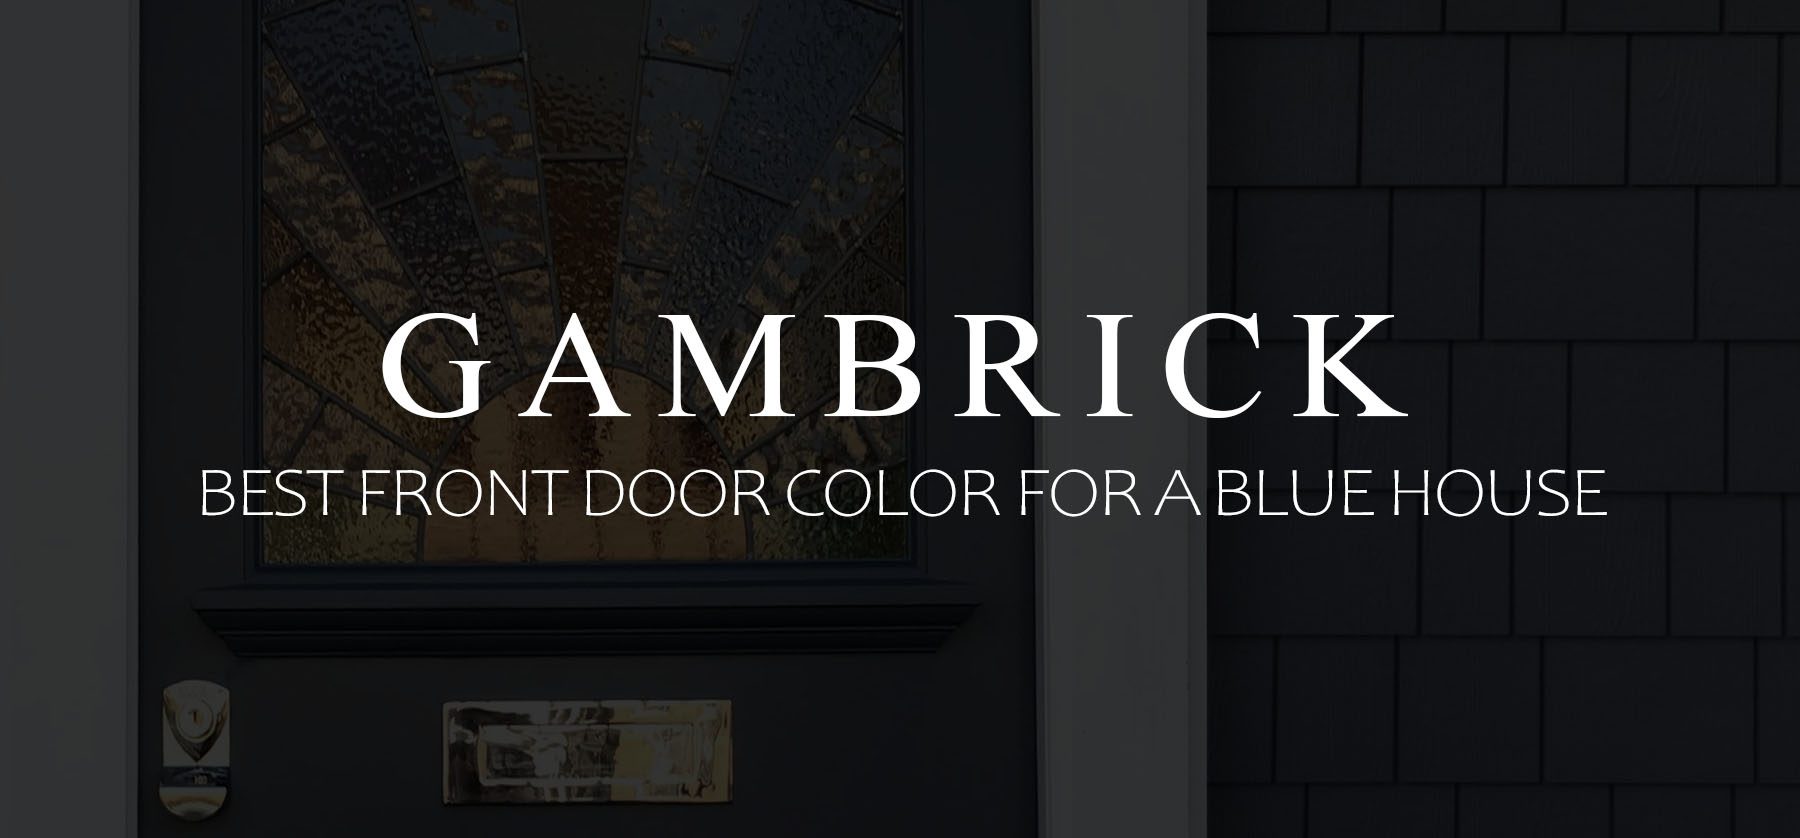 Best front door color for a blue house banner 1